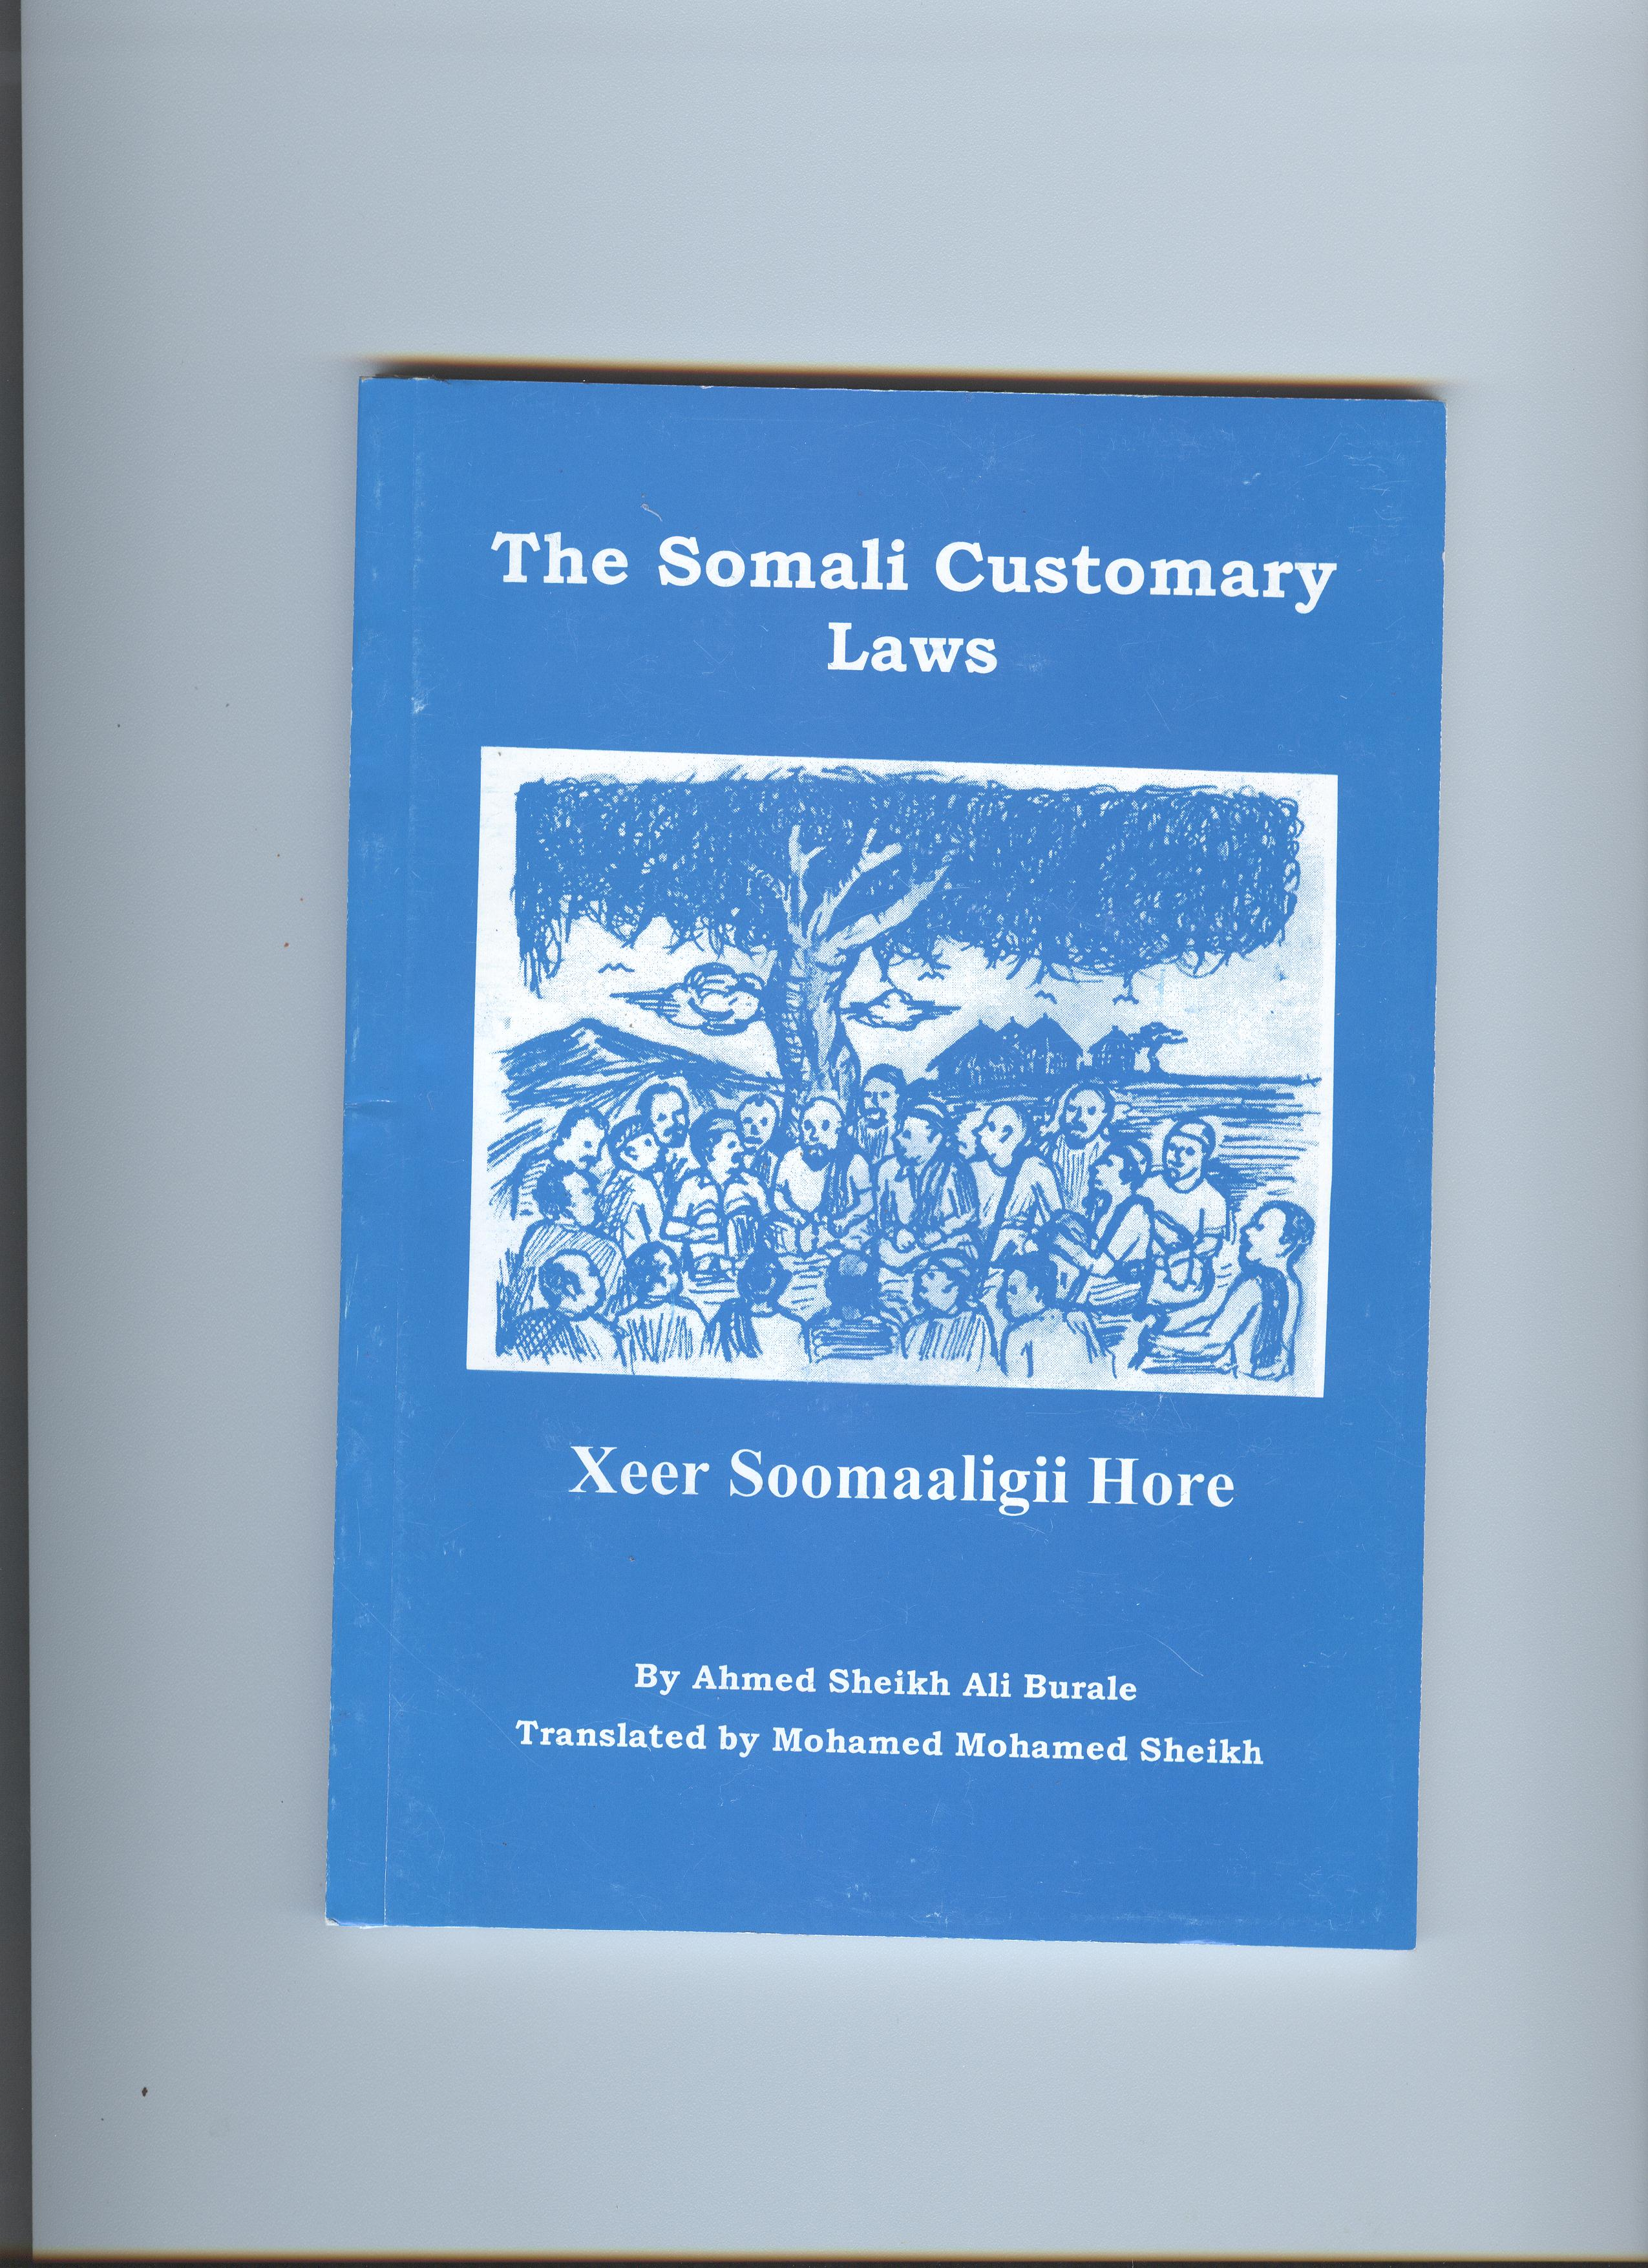 The Somali Customary Law